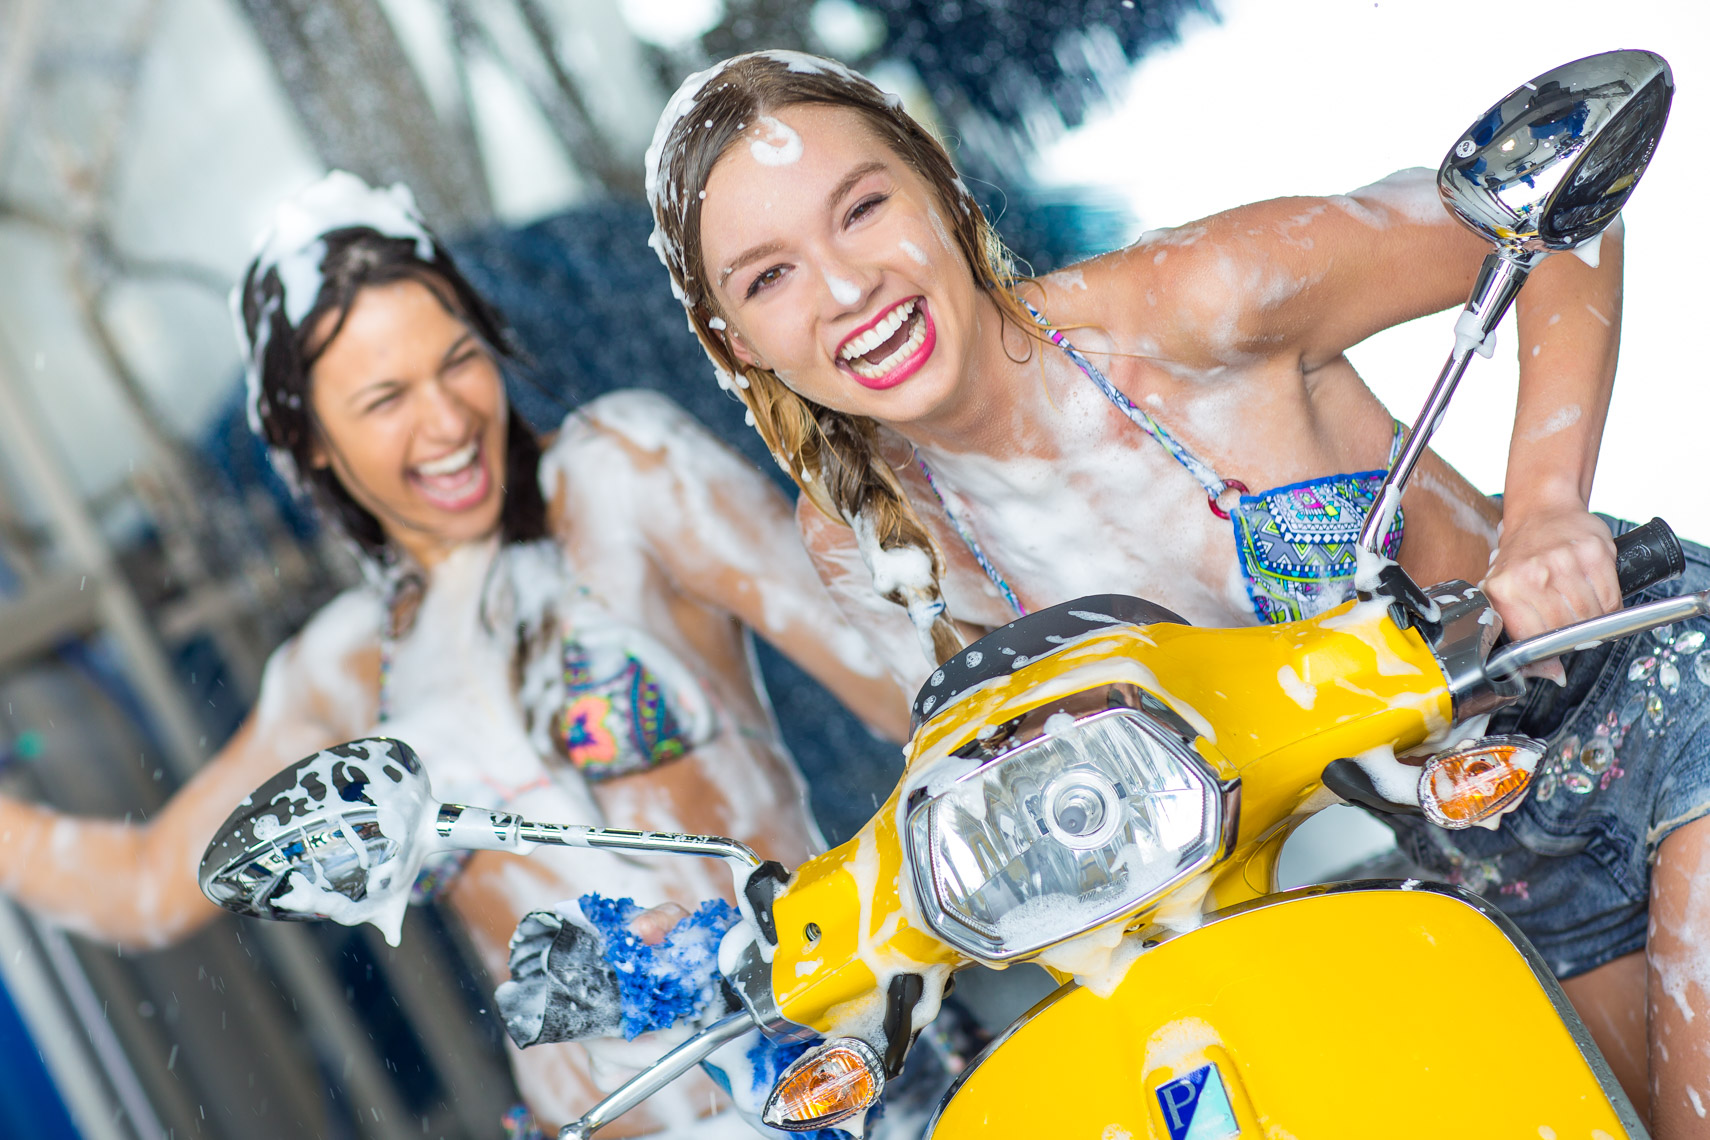 Young women driving vespa through car wash, shot by Steven P. Widoff